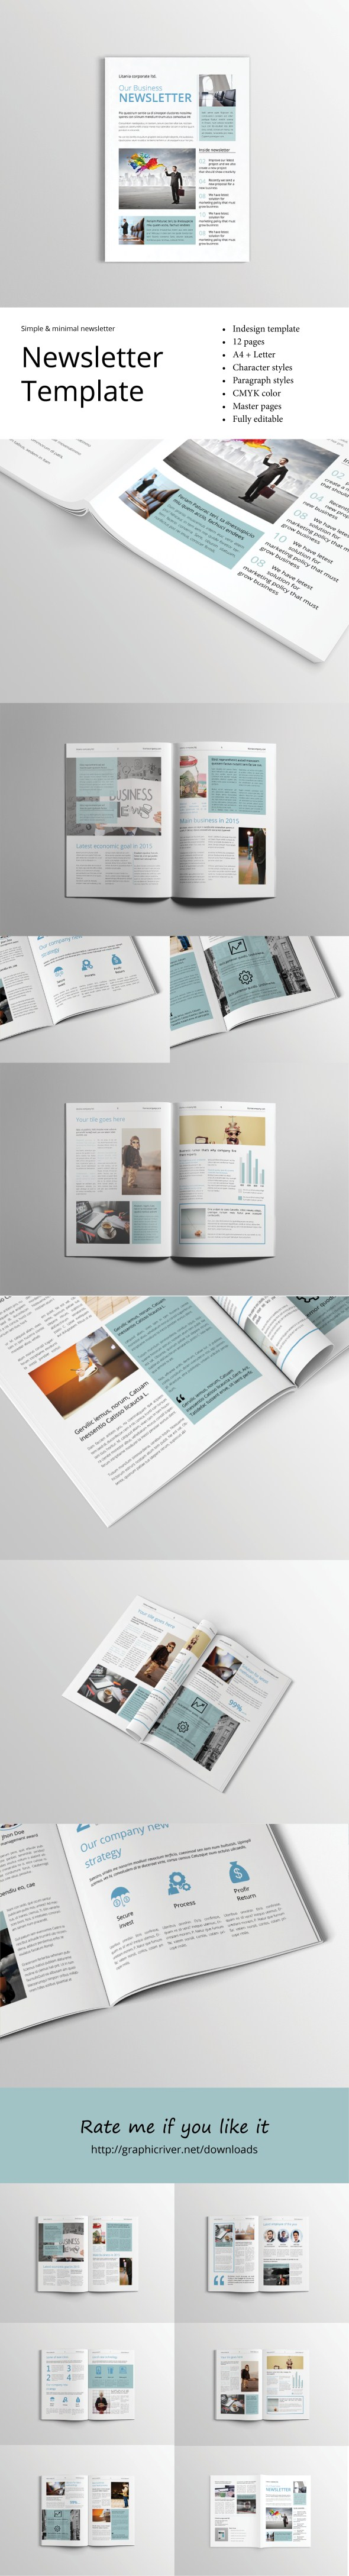 Professional Corporate Indesign Newsletter Template That Can Be